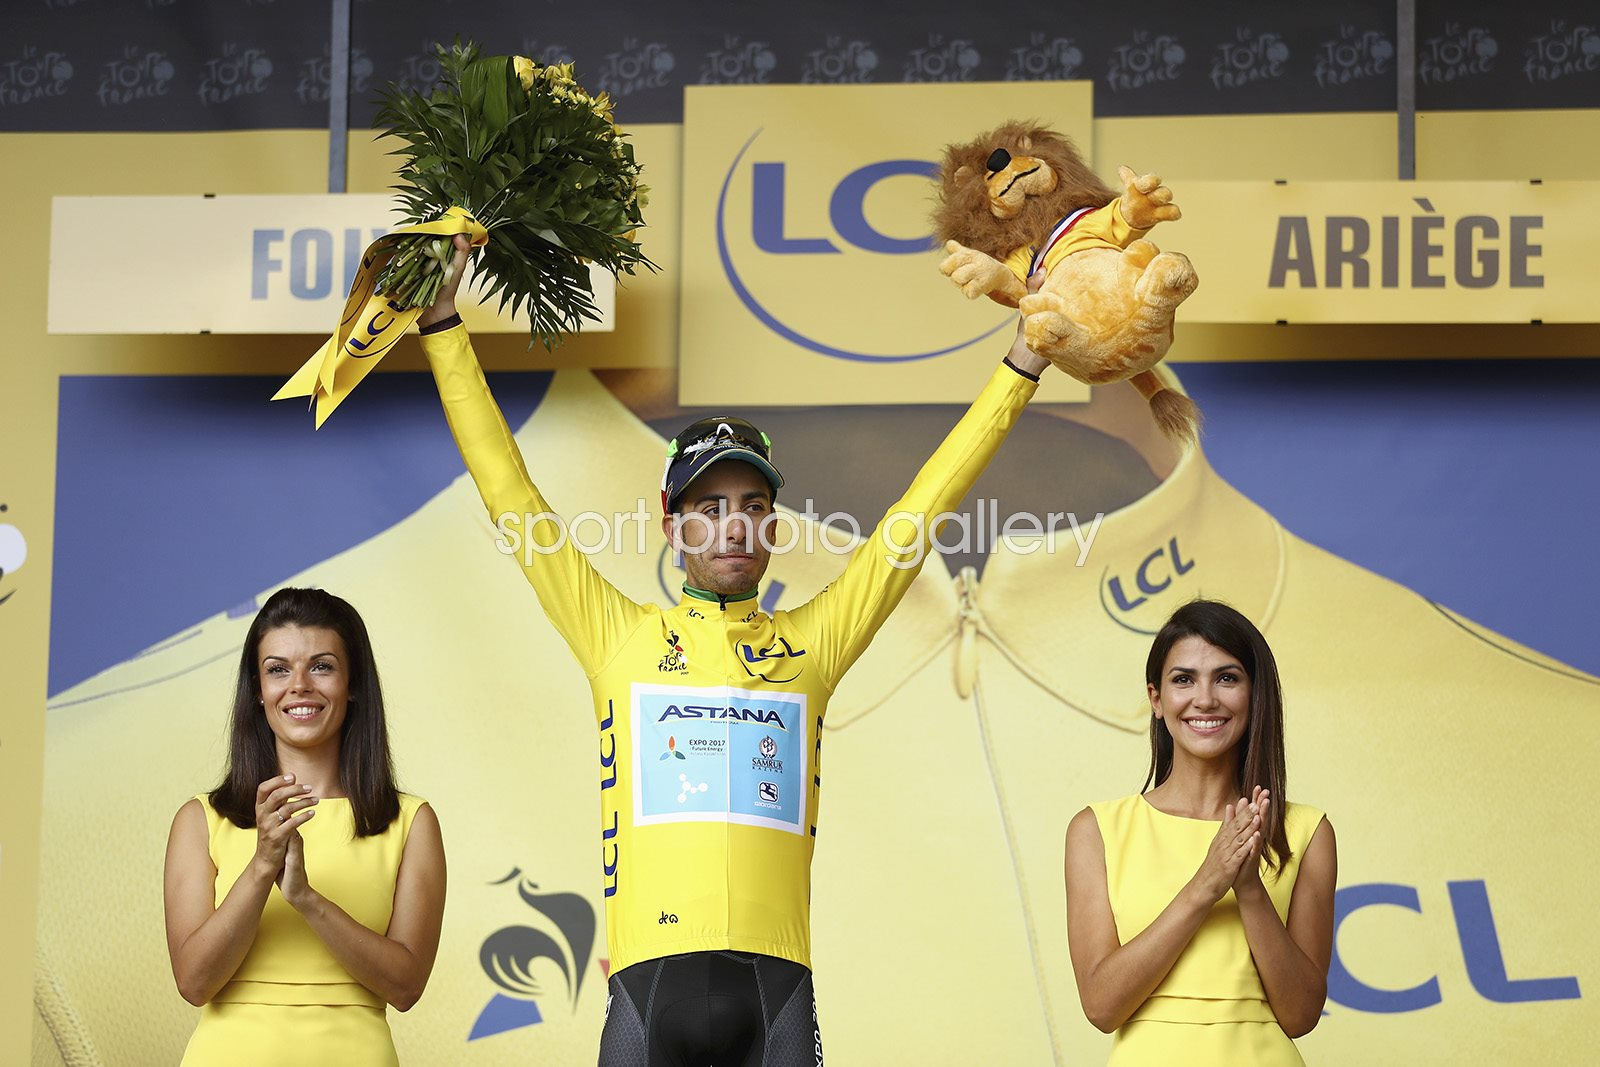 Fabio Aru Yellow Jersey Le Tour de France 2017